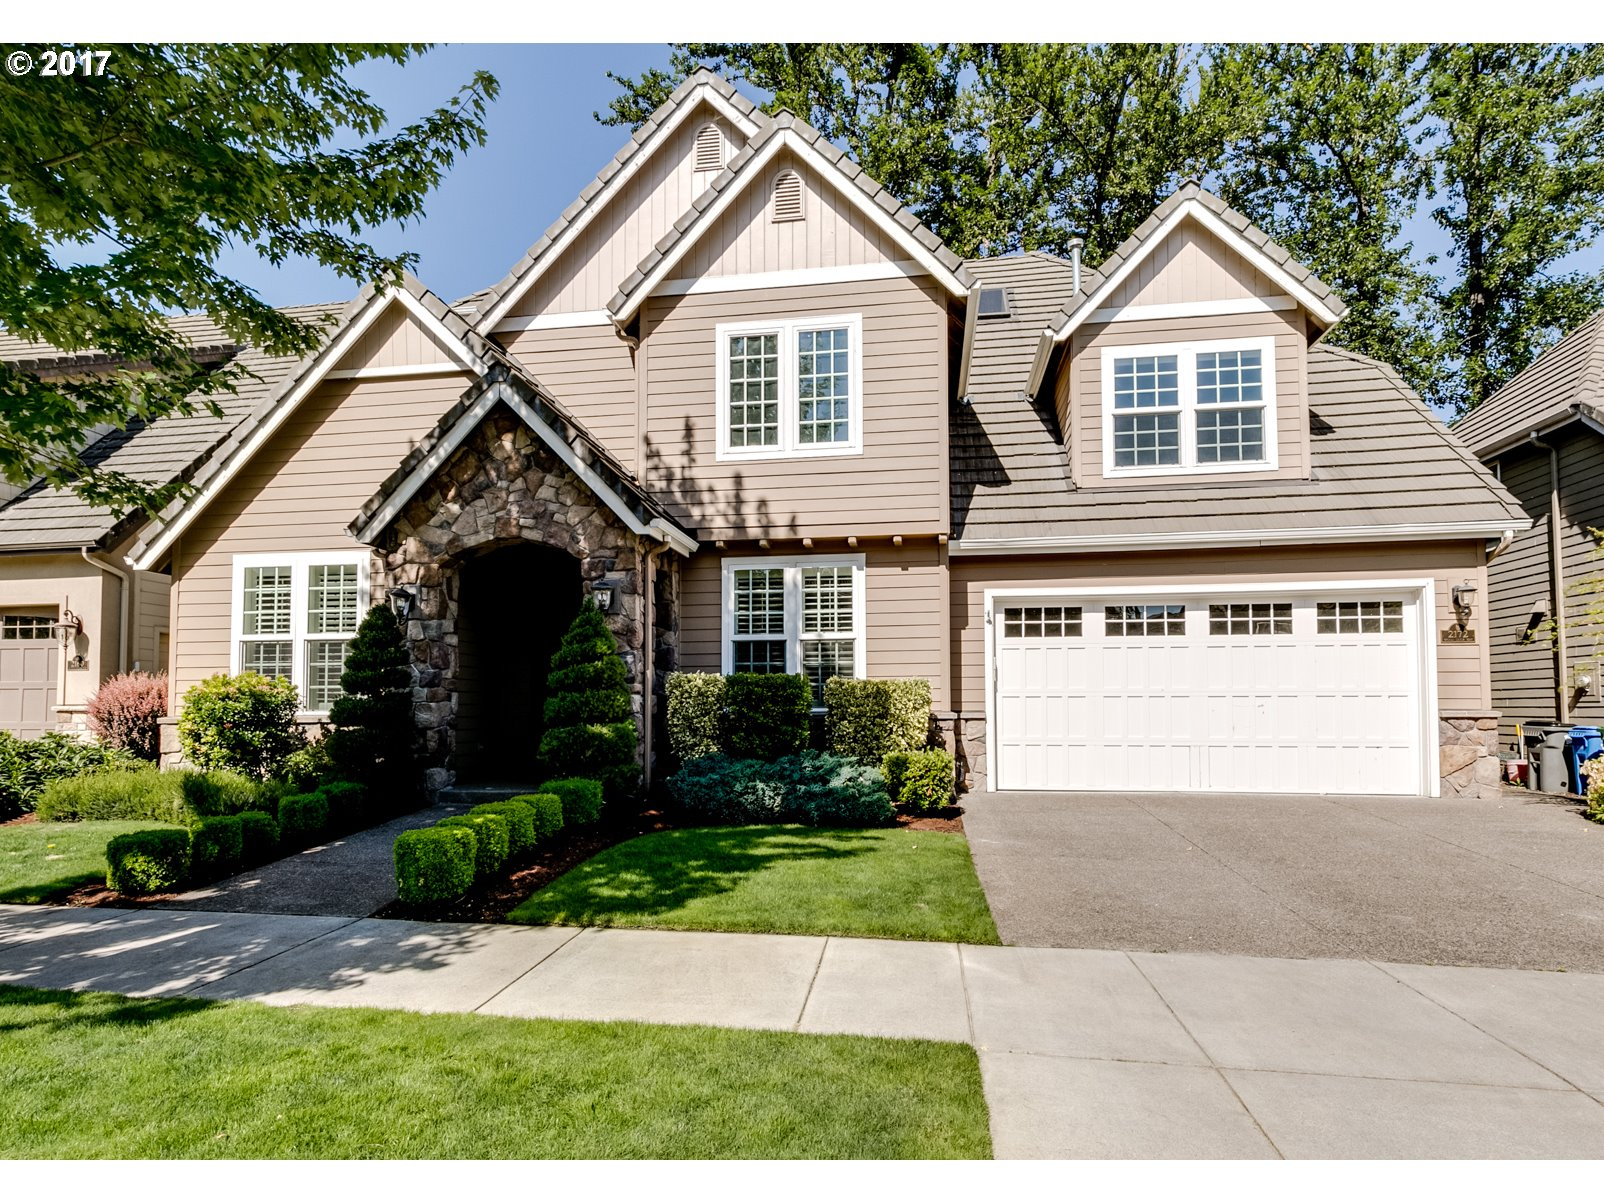 2172 WOOD DUCK WAY, Eugene, OR 97401